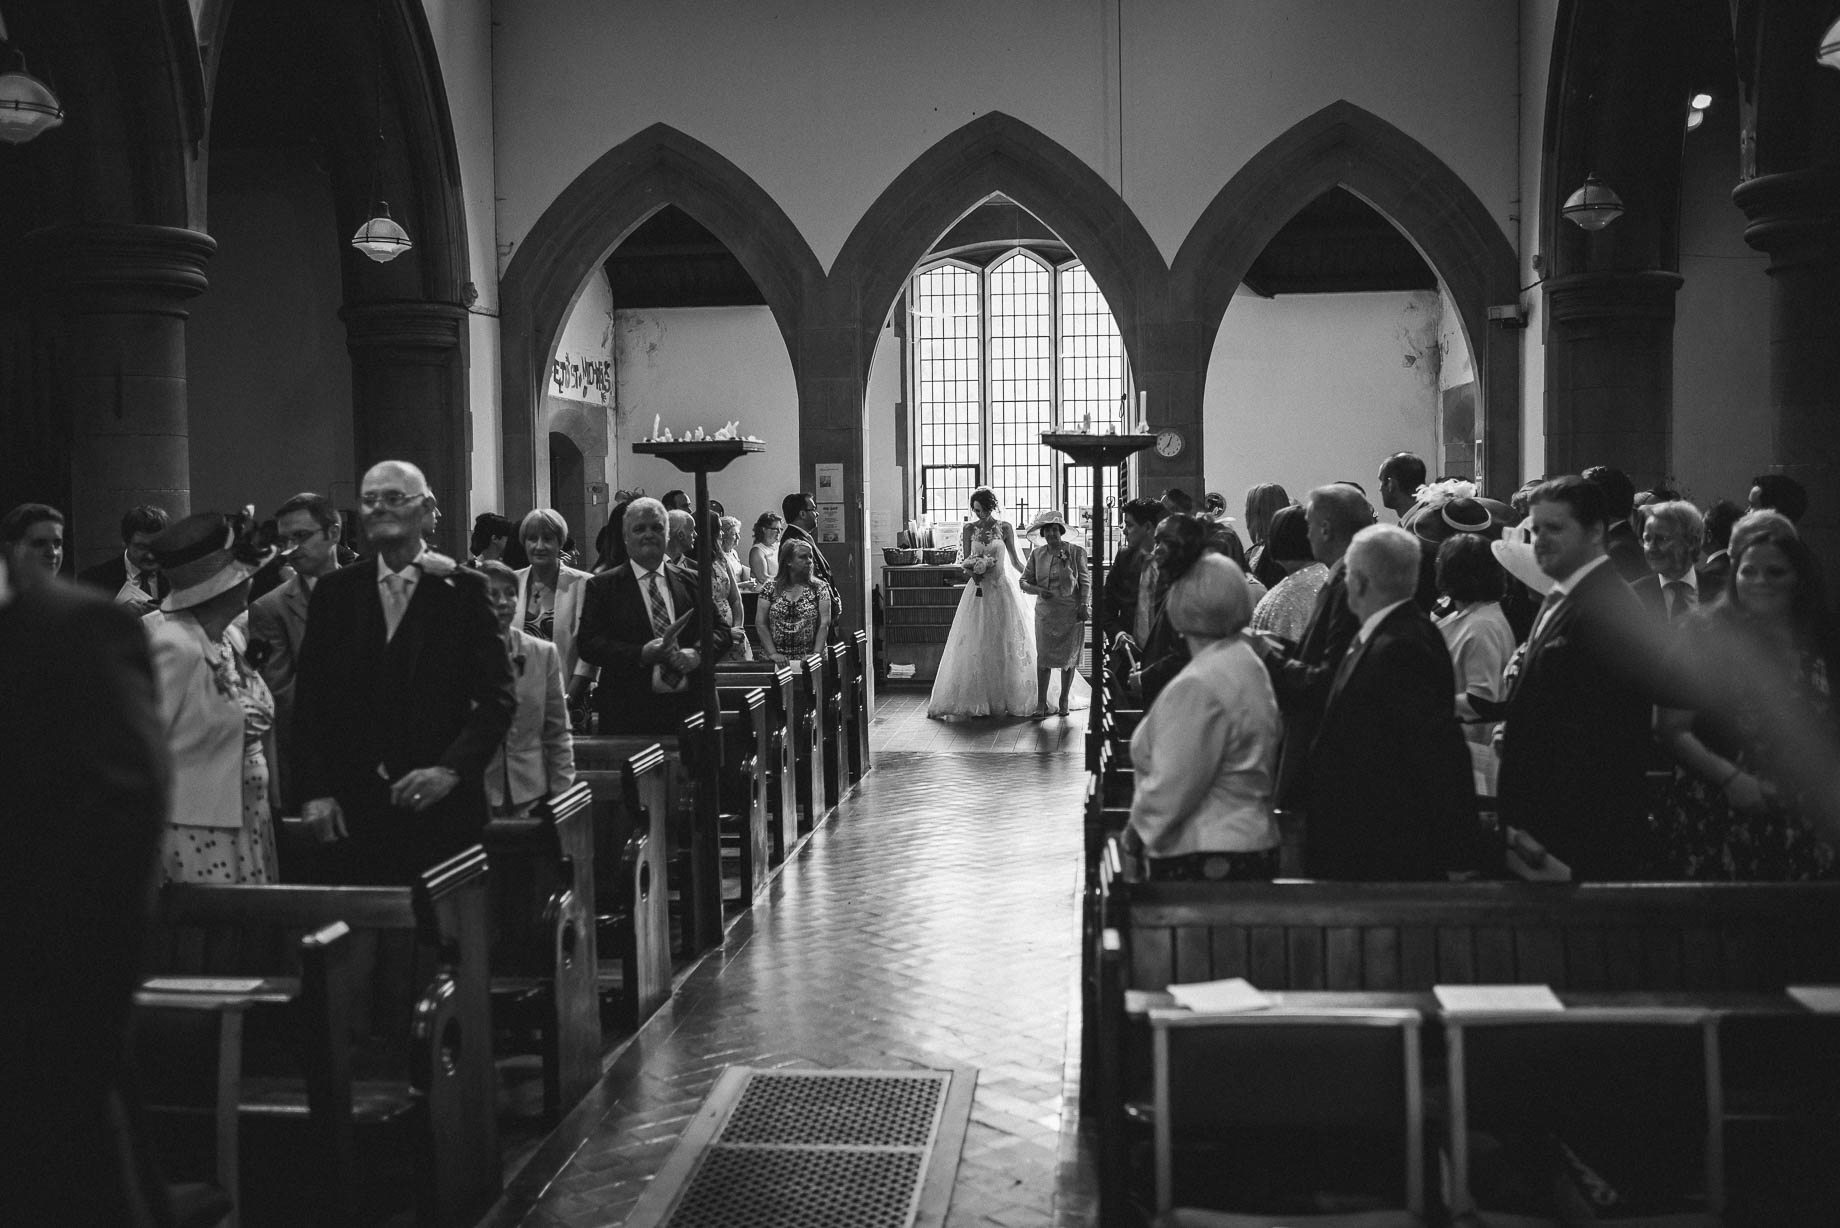 Hertfordshire wedding photography - Sarah and Stephen by Guy Collier Photography (56 of 161)